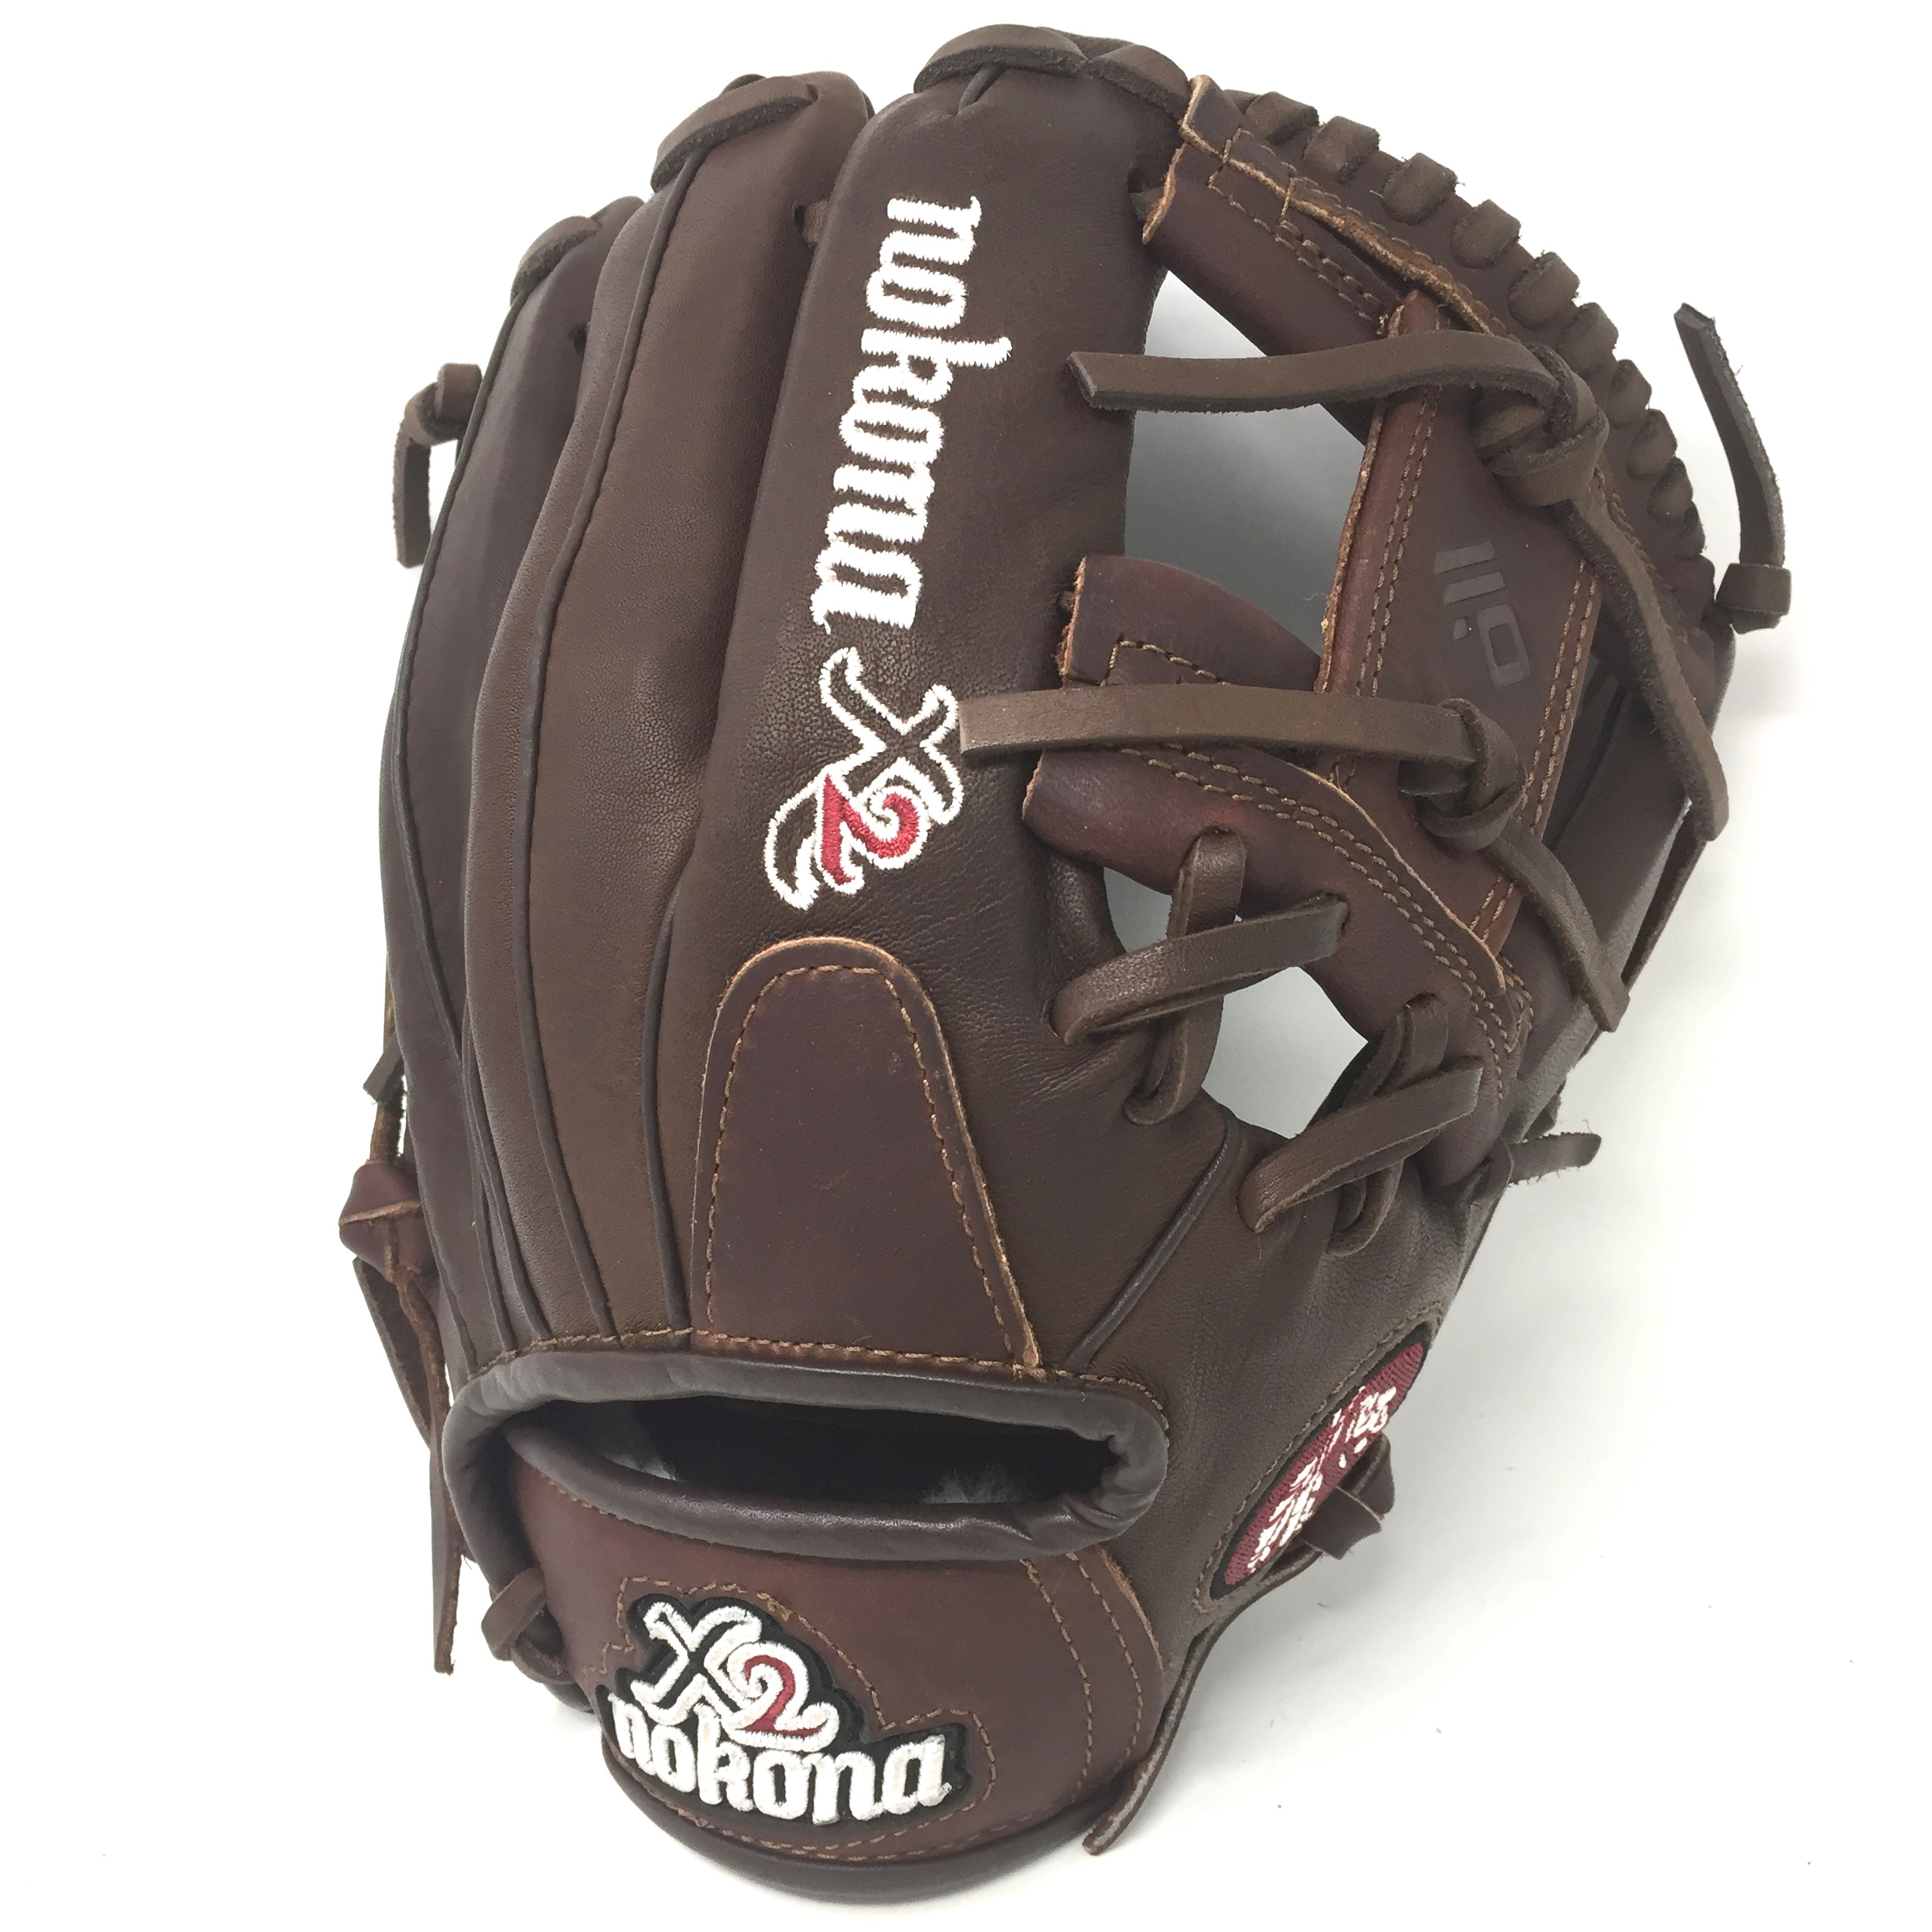 nokona-x2-elite-11-5-baseball-glove-i-web-right-hand-throw X2-1150I-RightHandThrow Nokona 808808891420 <p>11.5 Pitcher/Infield Pattern I-Web Stampede + Kangaroo Leather Conventional Open Back